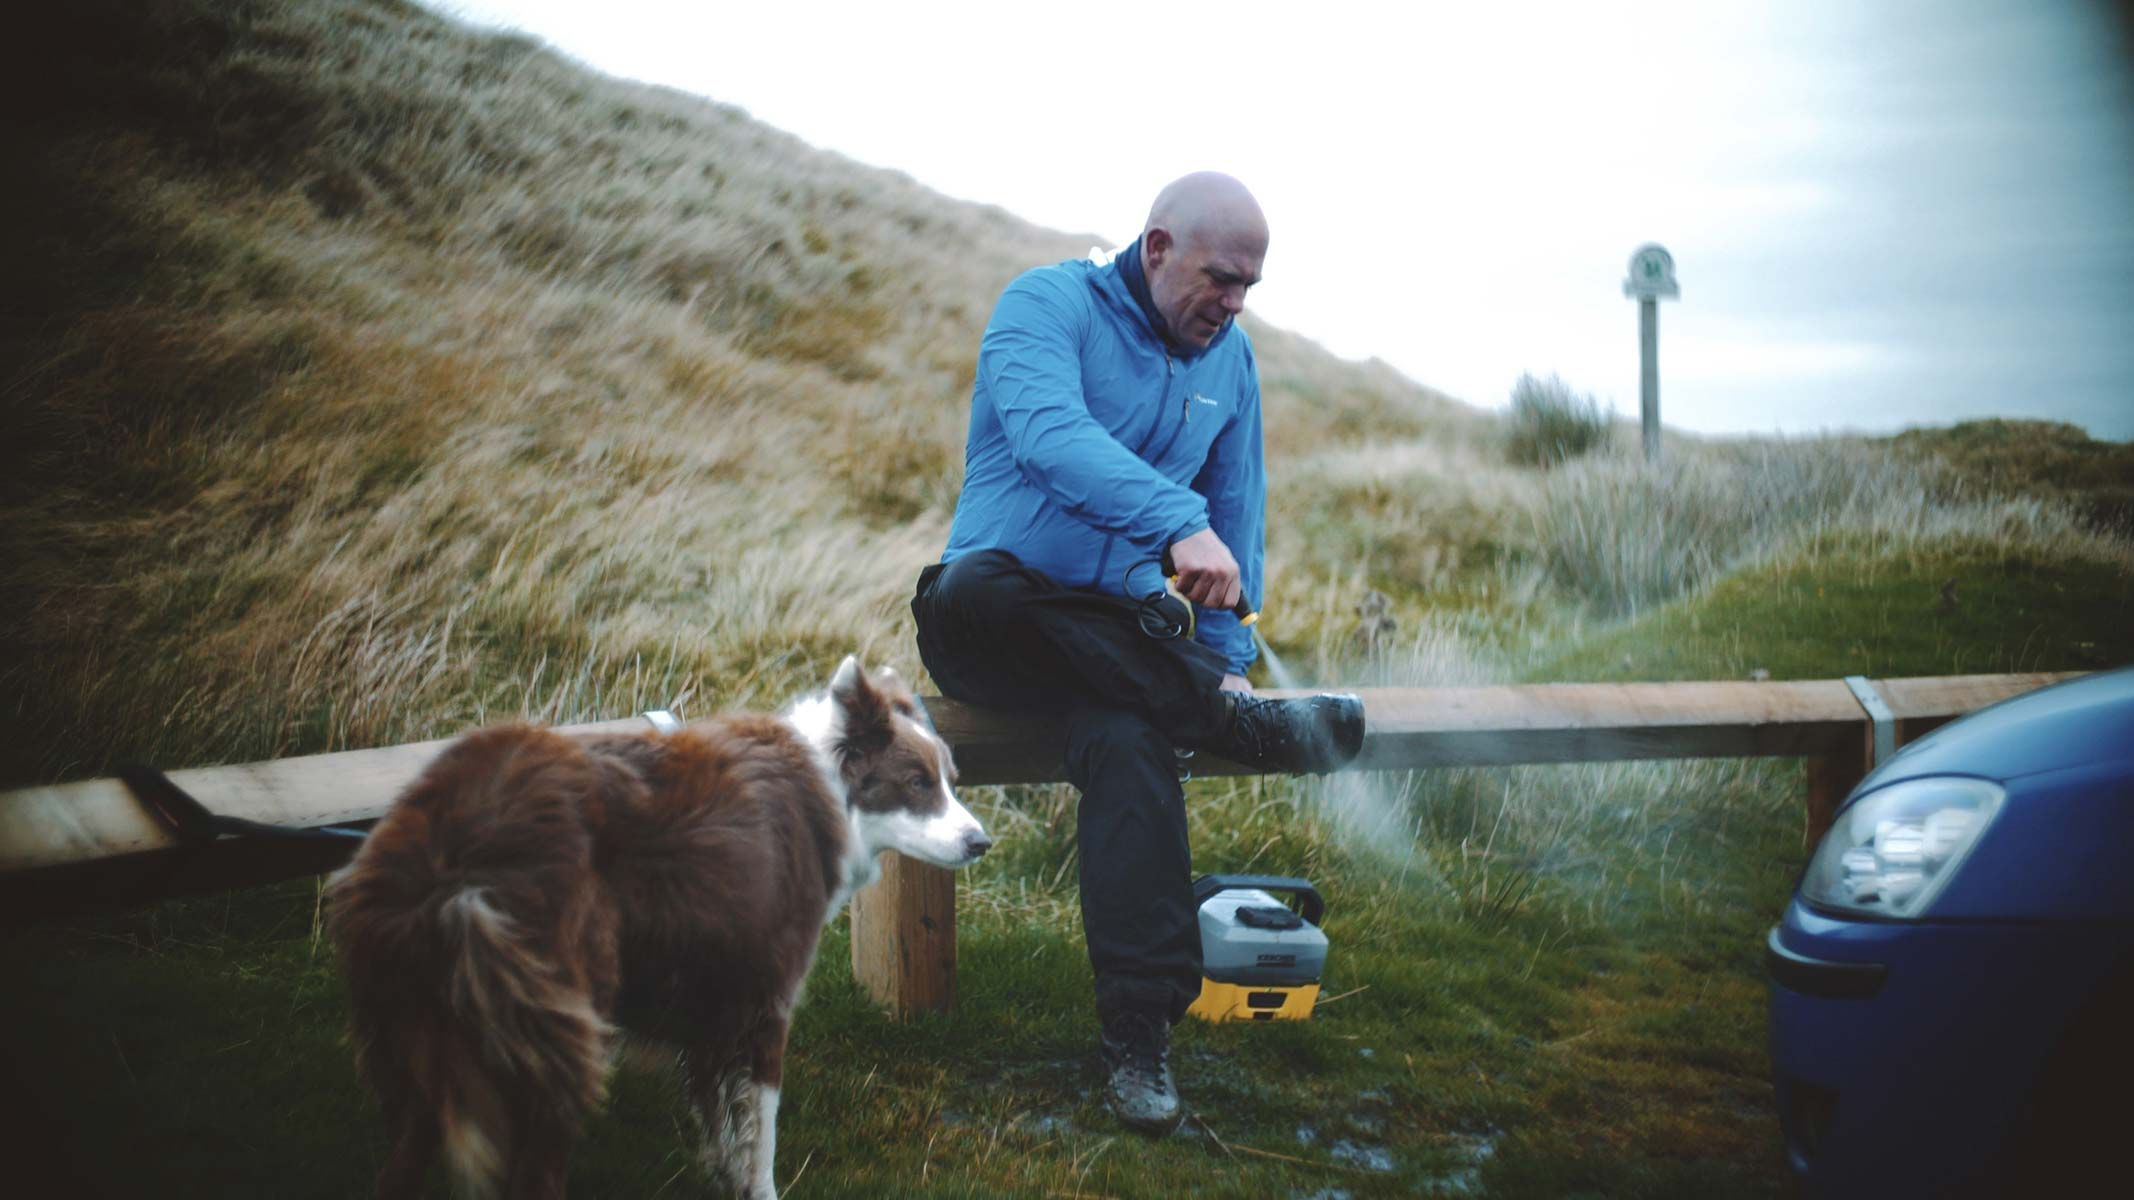 Kärcher-Paul-Steele-11-1 Paul Steele on Hiking and Clean for Confidence (video)